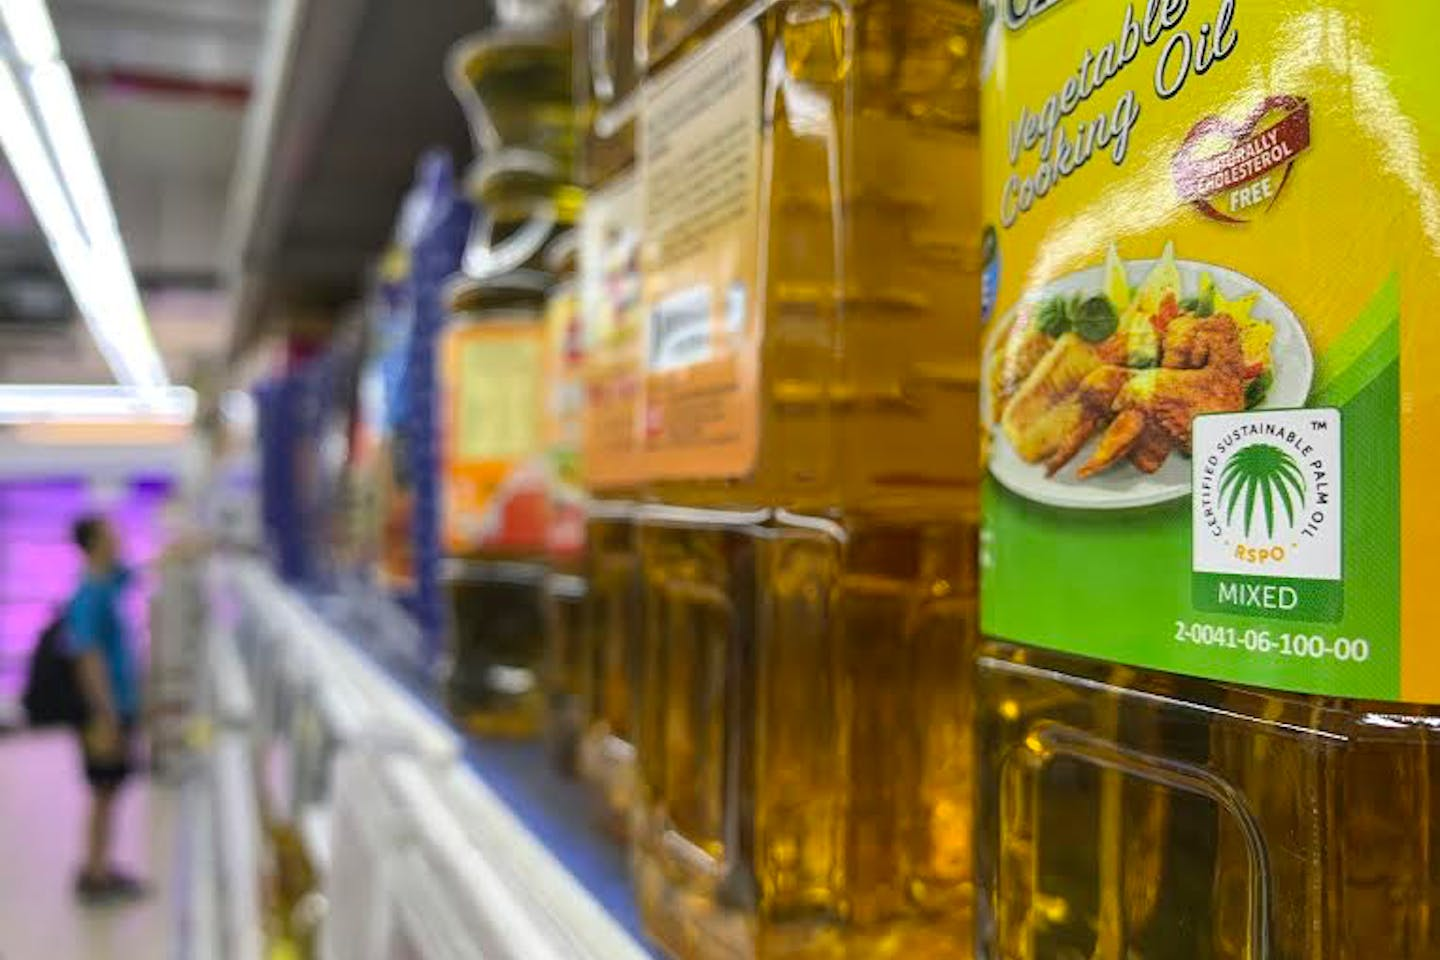 The RSPO logo on Cabbage brand vegetable oil in NTUC Fairprice in Singapore.